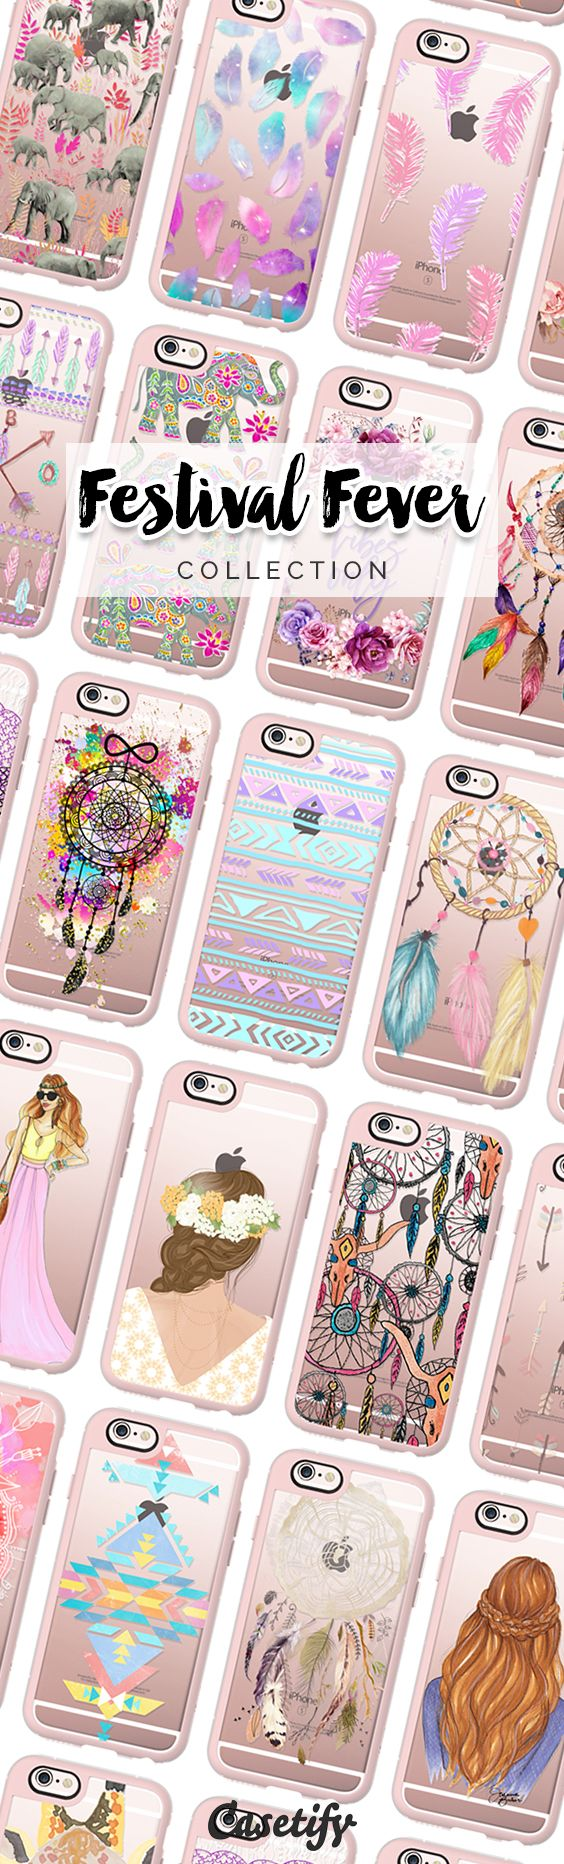 Life is a festival to those who live with enthusiasm. Check out our Festival Fever collection now! https://www.casetify.com/collections/festival_fever#/ | @casetify